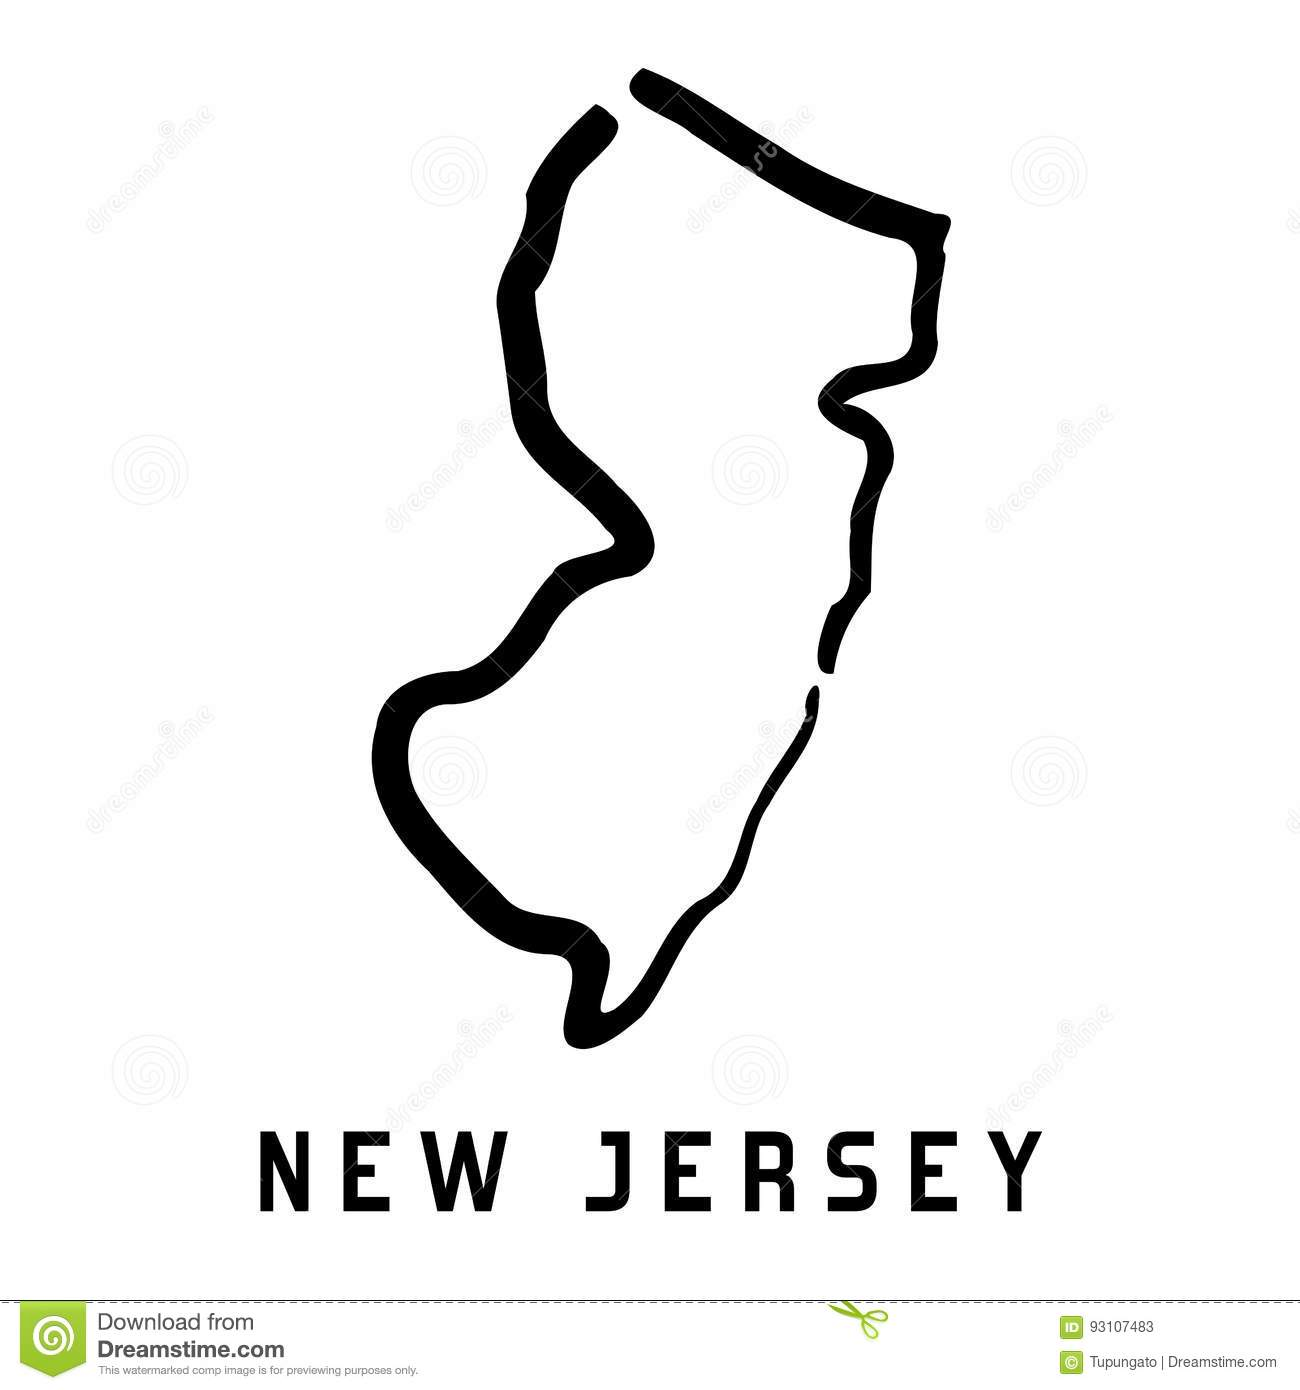 New Jersey Stock Vector